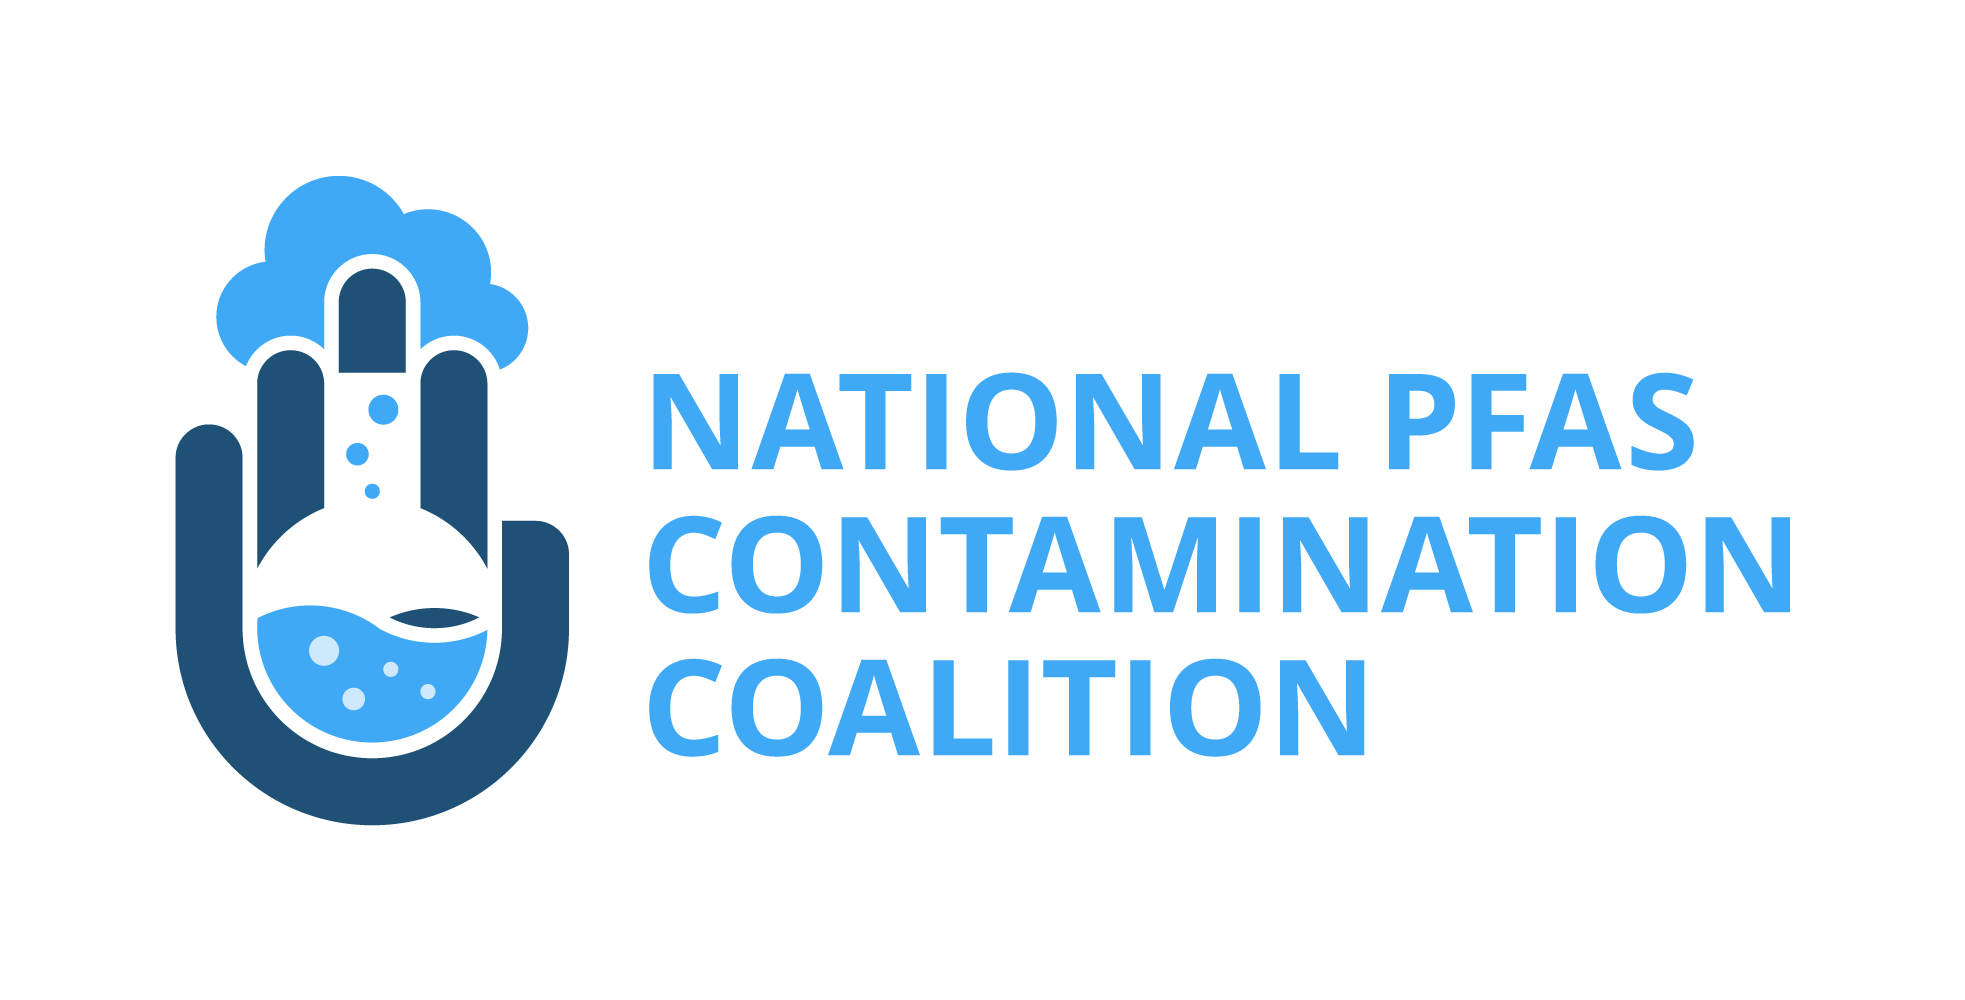 National PFAS Contamination Coalition